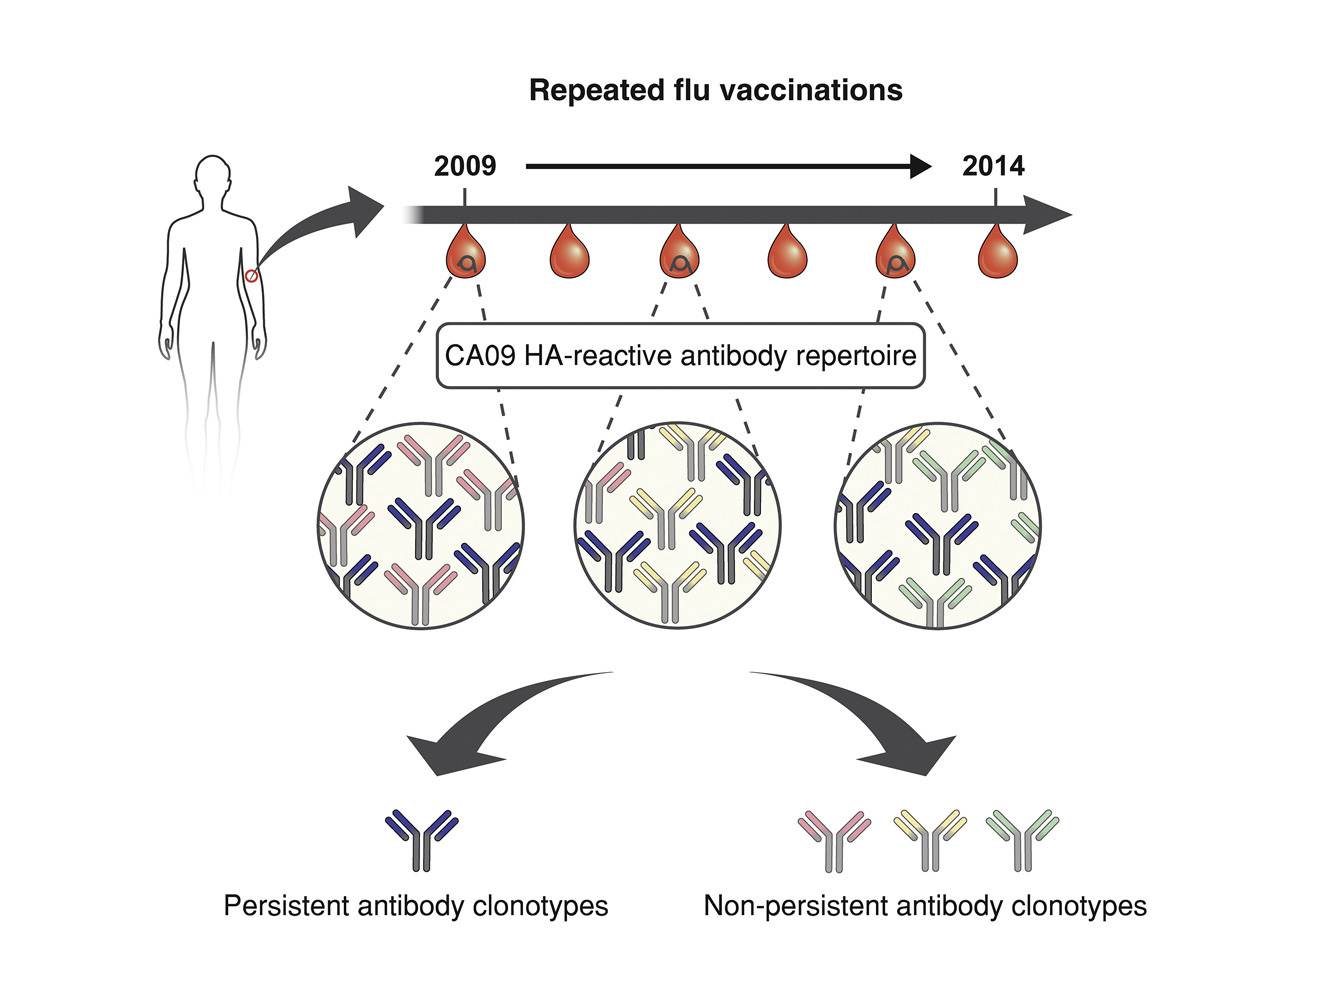 Antibodies From Earlier Exposures Affect Response To New